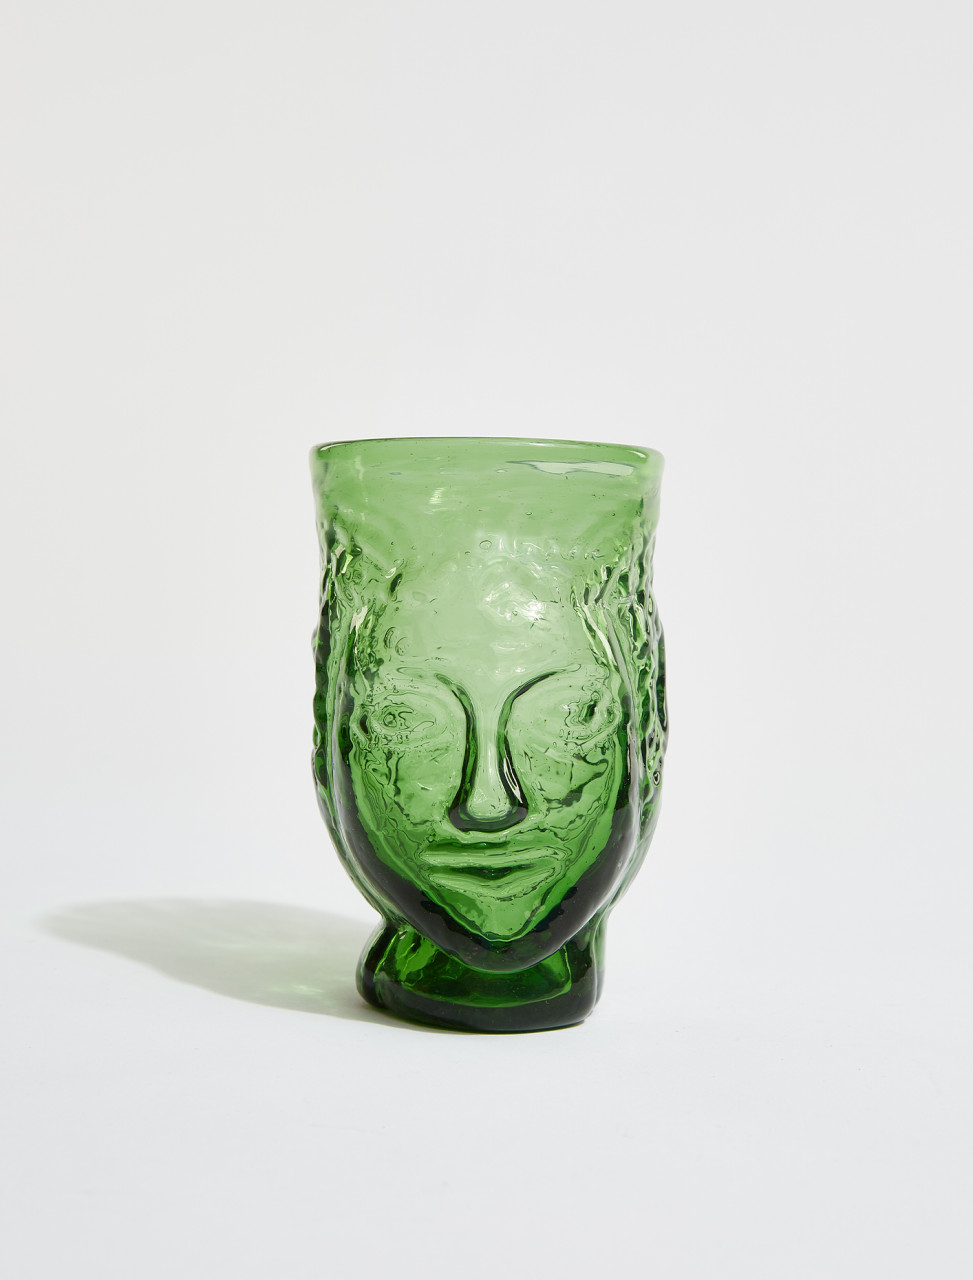 87DGREEN LA SOUFFLERIE TETE GLASS IN GREEN